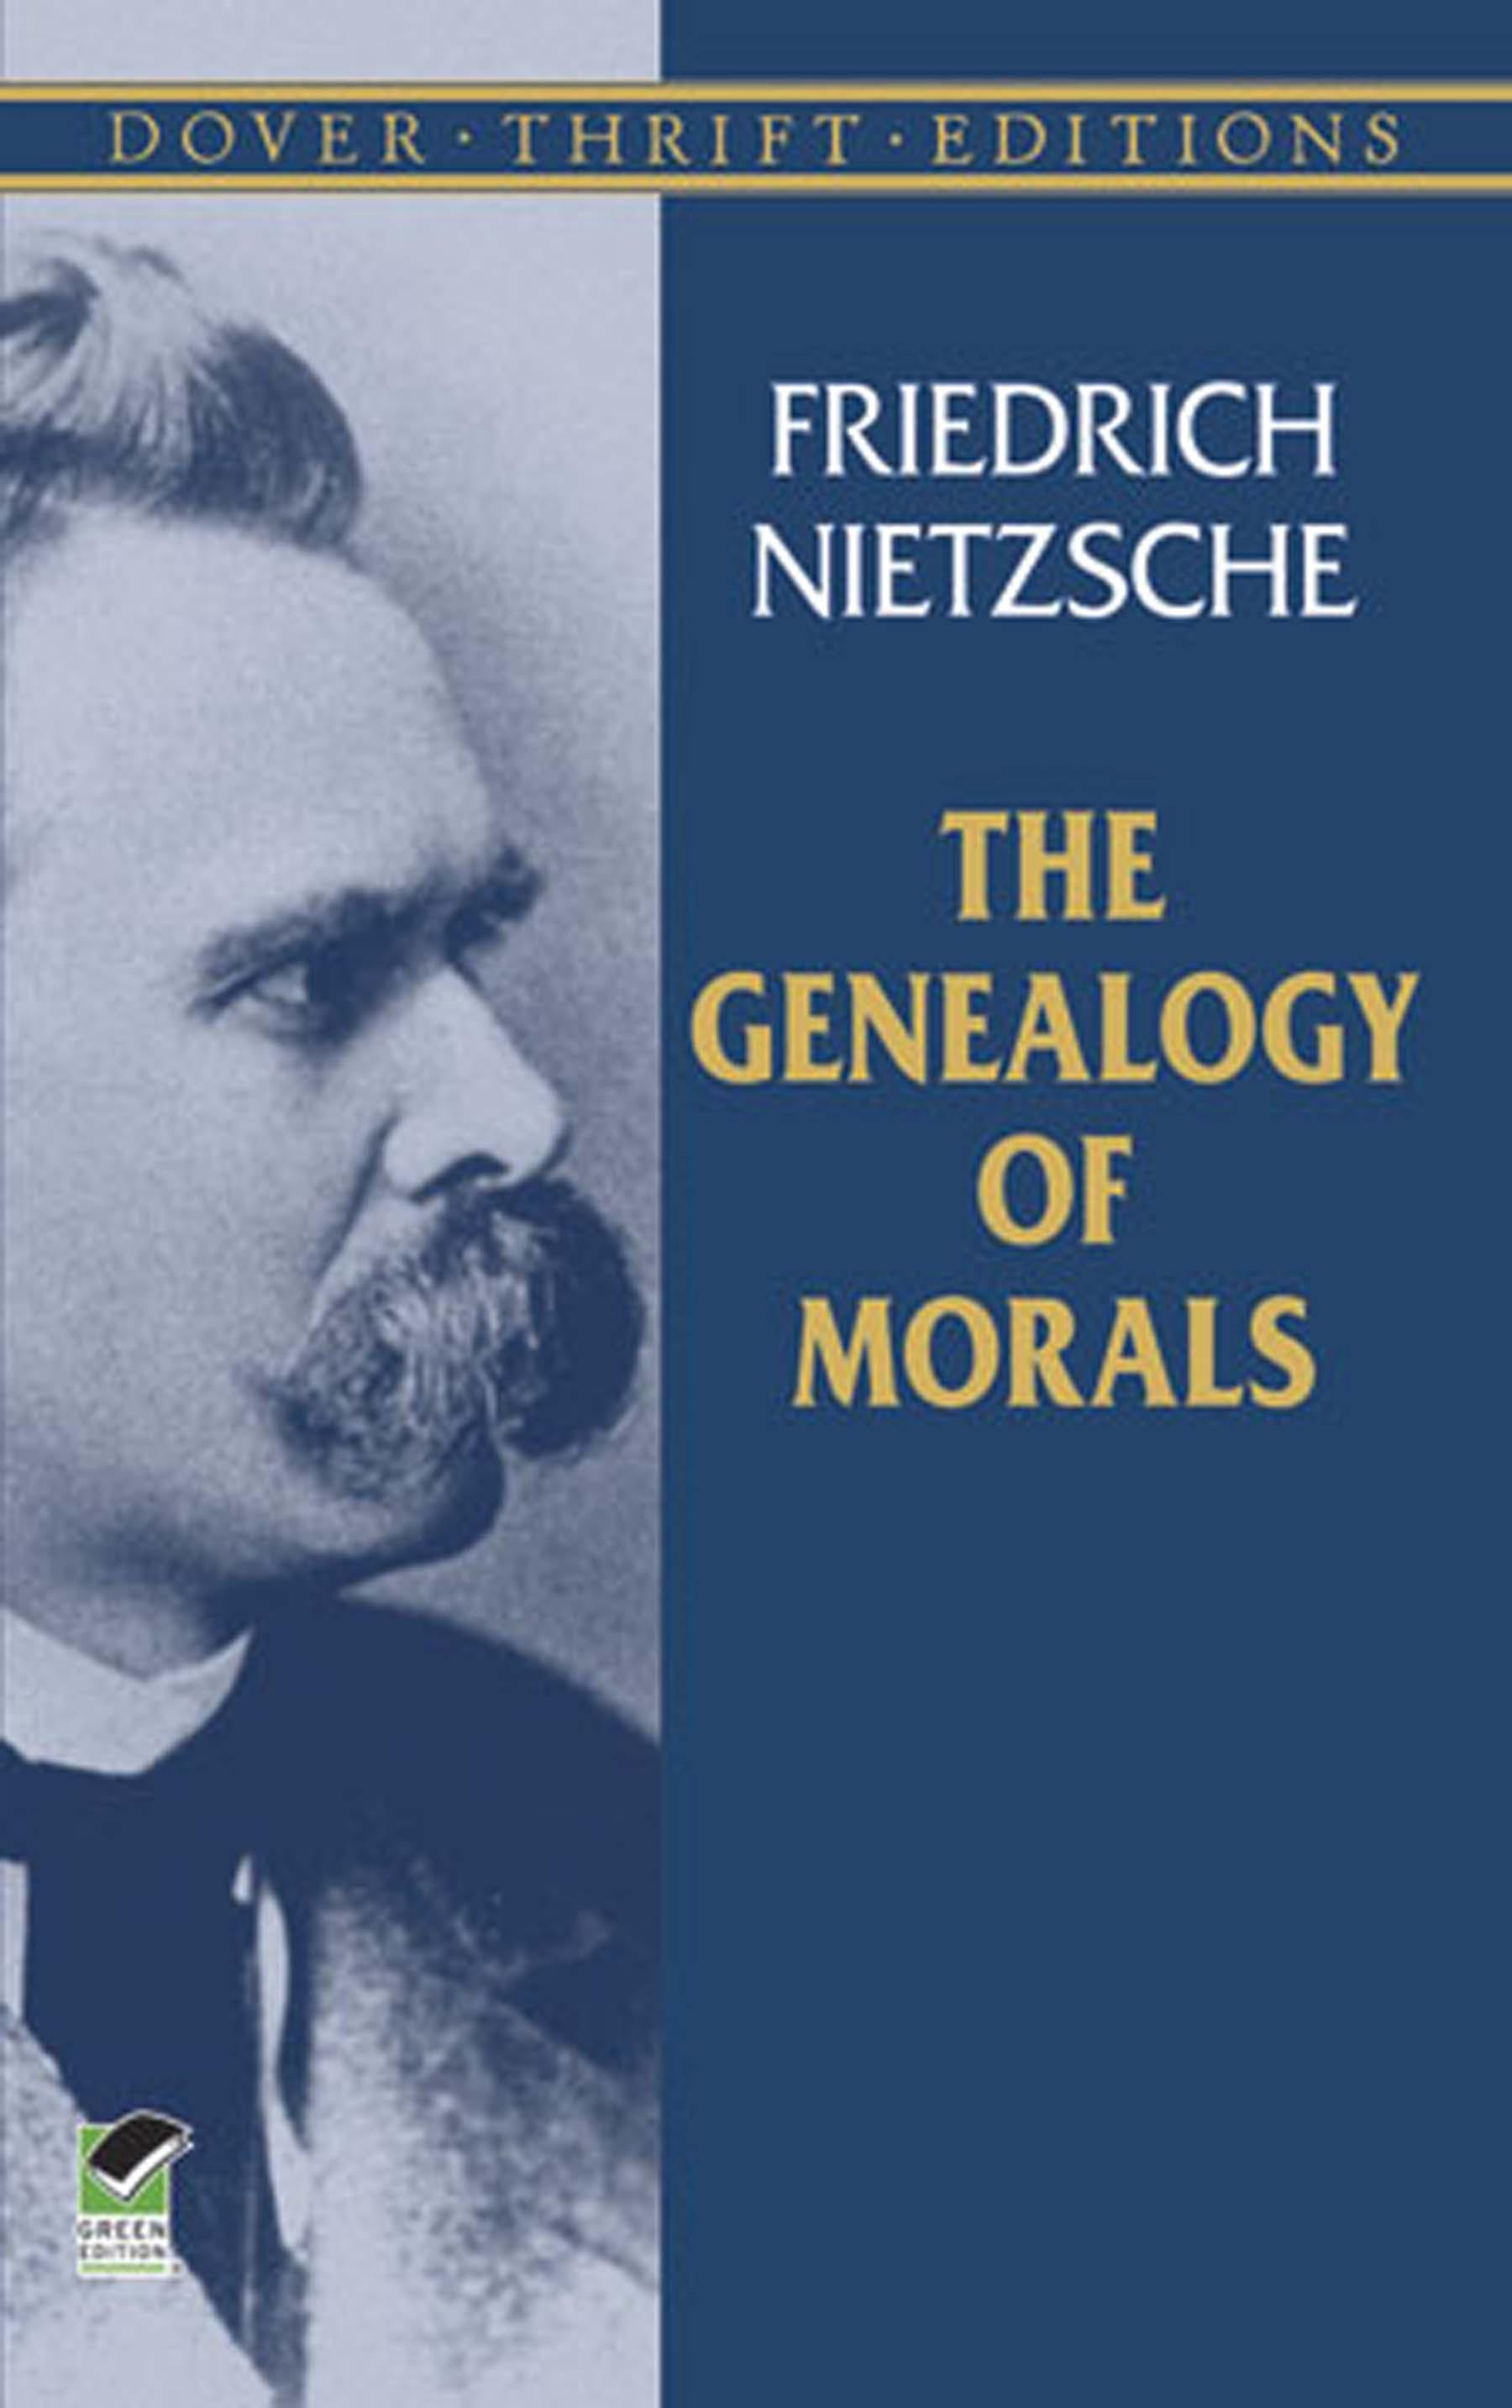 a comparison of nietzsches and kants view on morality Nietzsche as critic and captive of enlightenment nietzsche as critic and captive of kant represents the attempt to construct an enlightened morality.